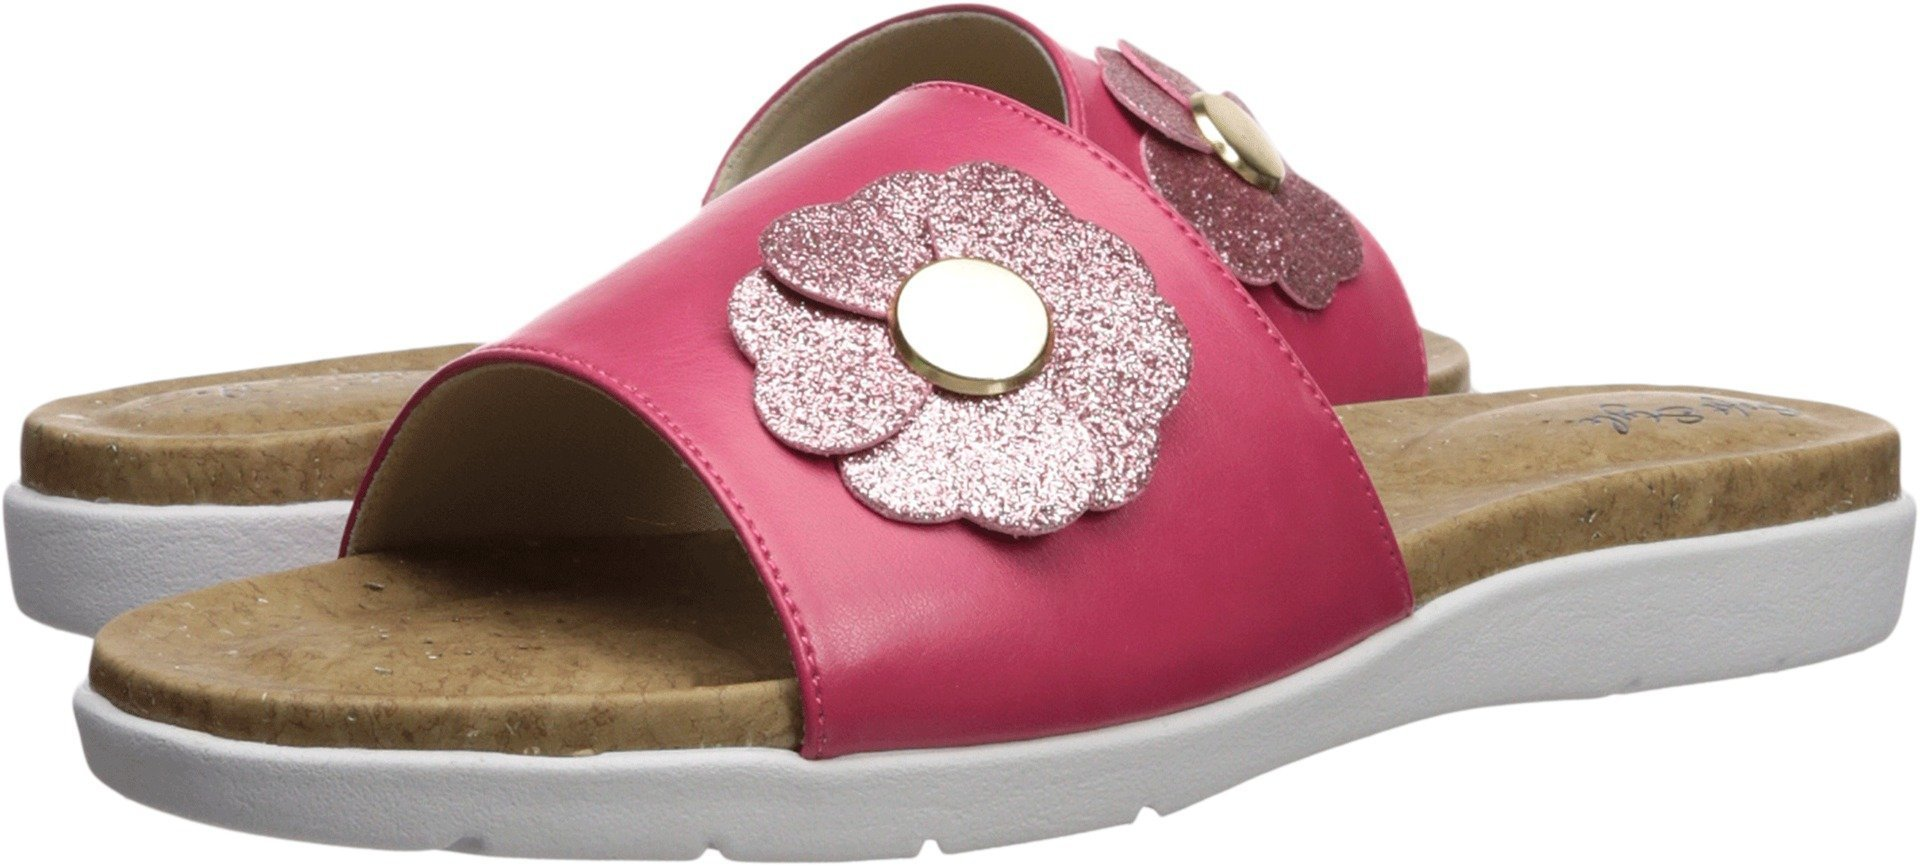 Soft Style by Hush Puppies Women's Laurie Sandal, Azalea Vitello, 09.5 W US